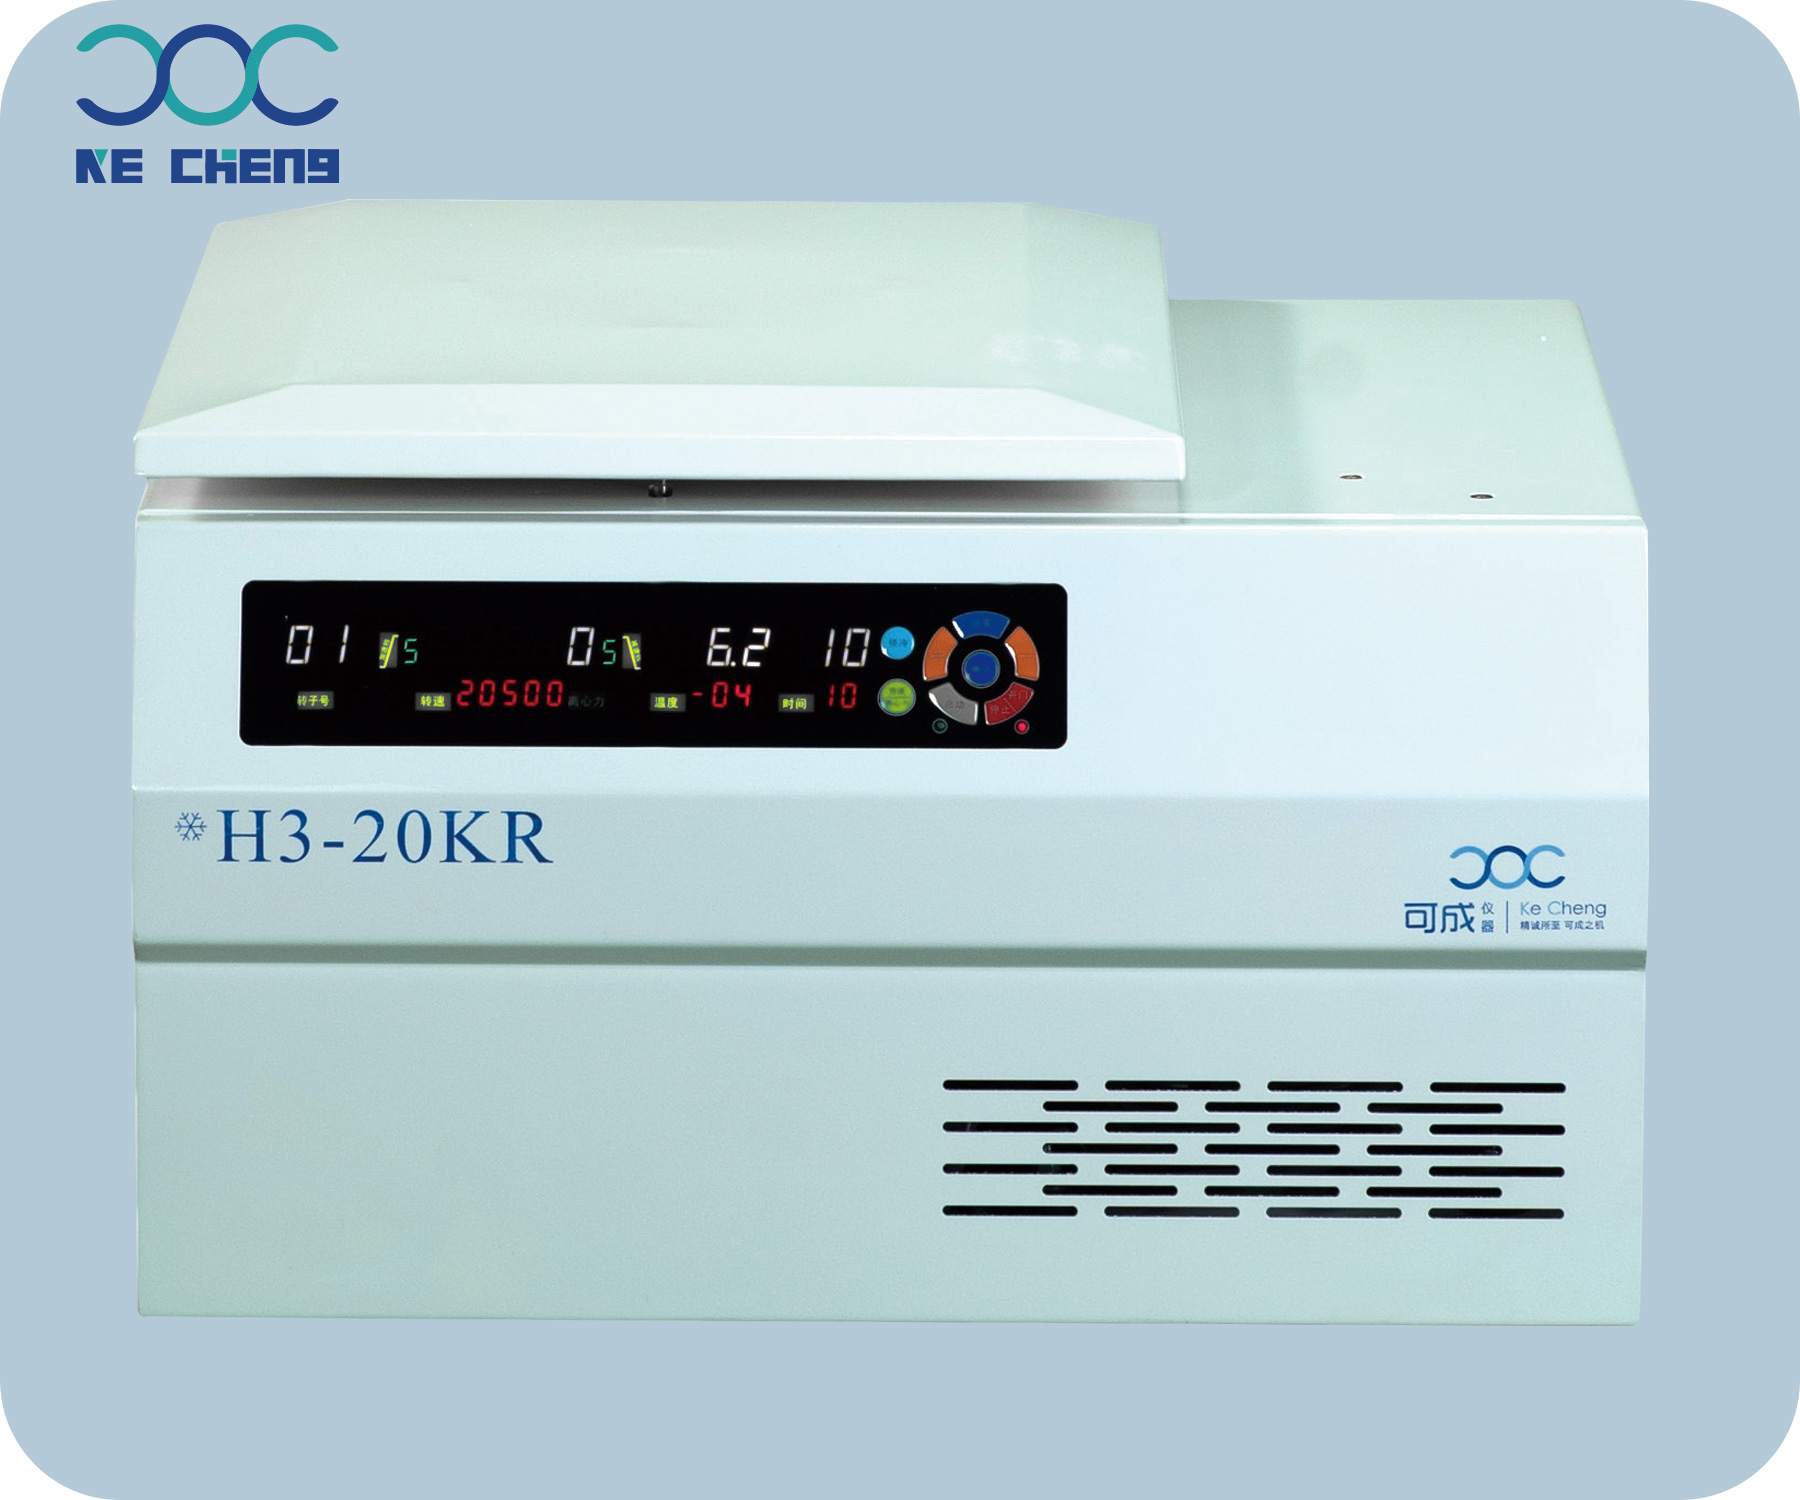 H3-20KR High Speed Refrigerated Centrifuge